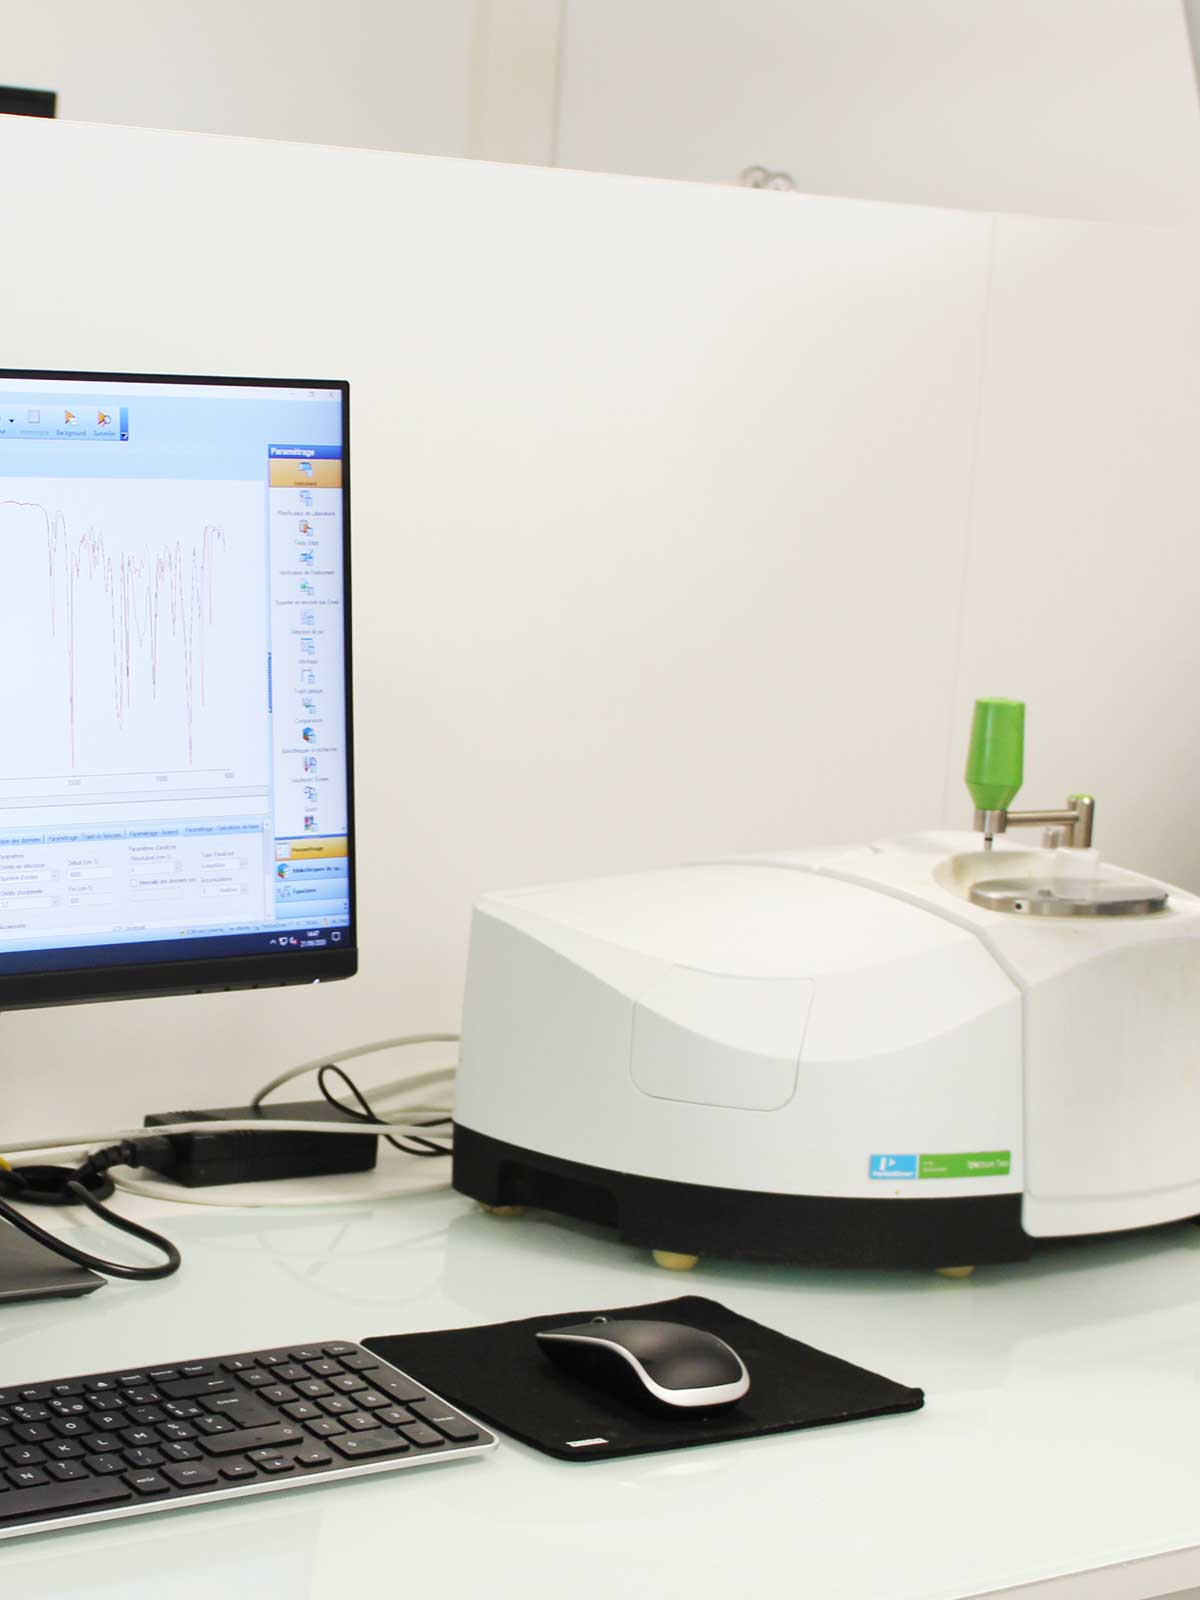 physico-chemical analyses with ftir at SPECIFIC POLYMERS